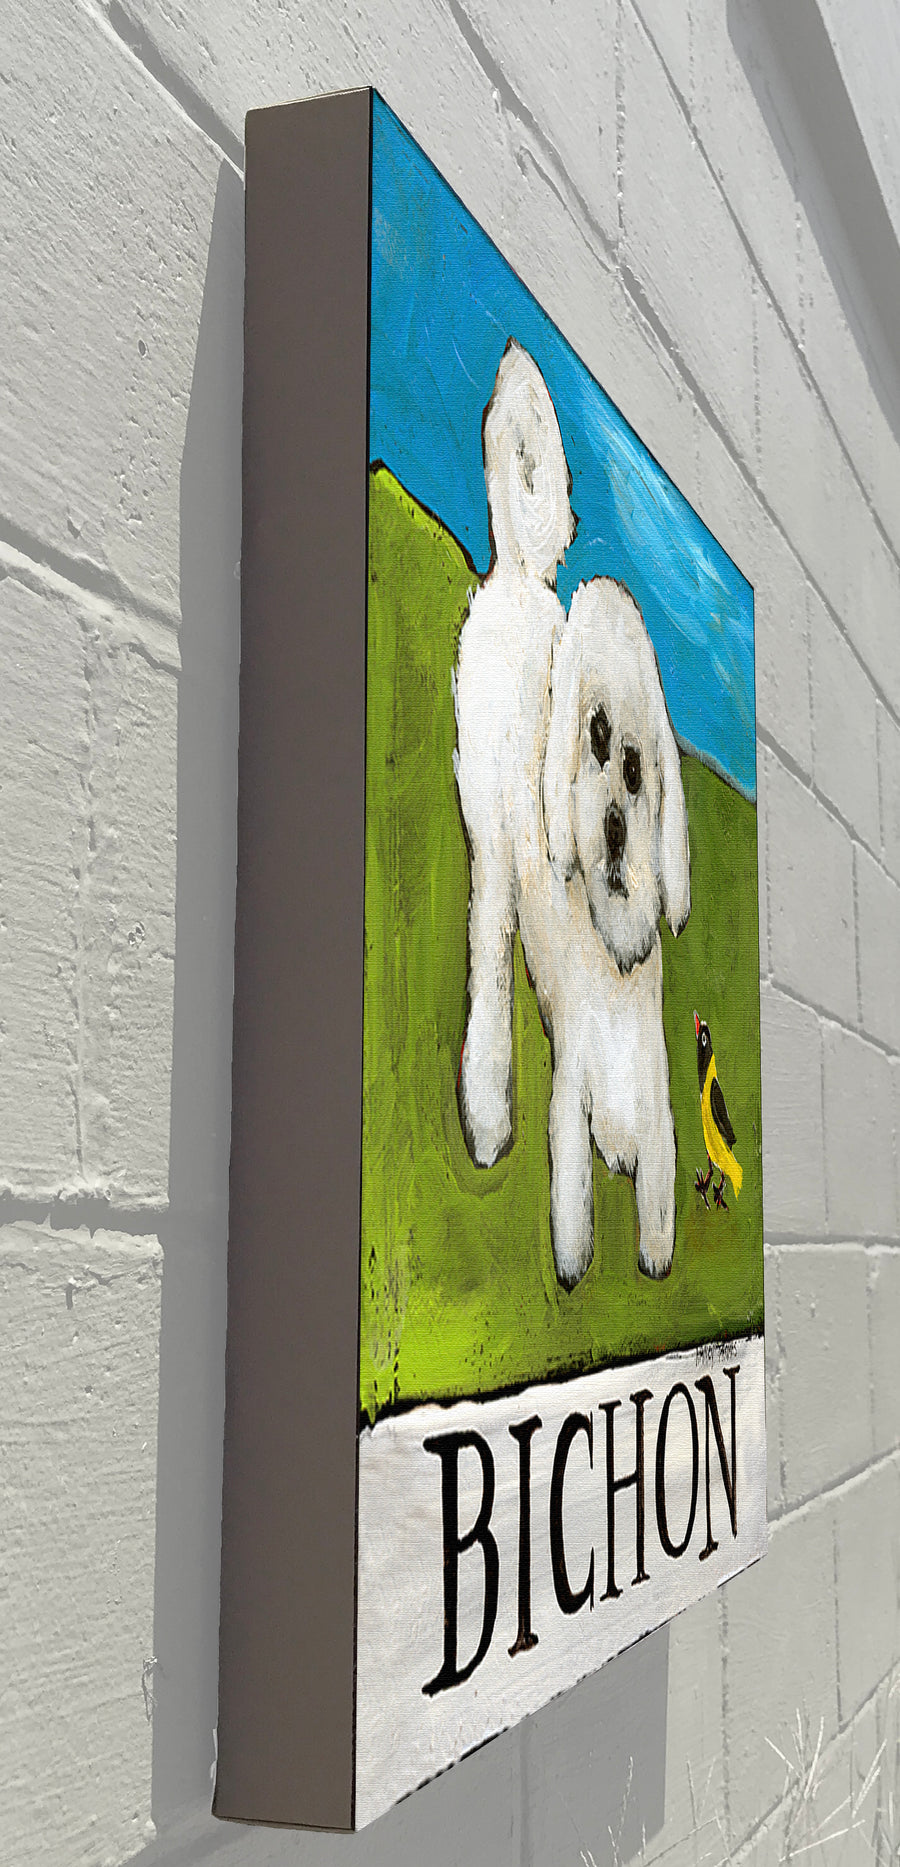 Gallery Grand - Doggie - Bichon